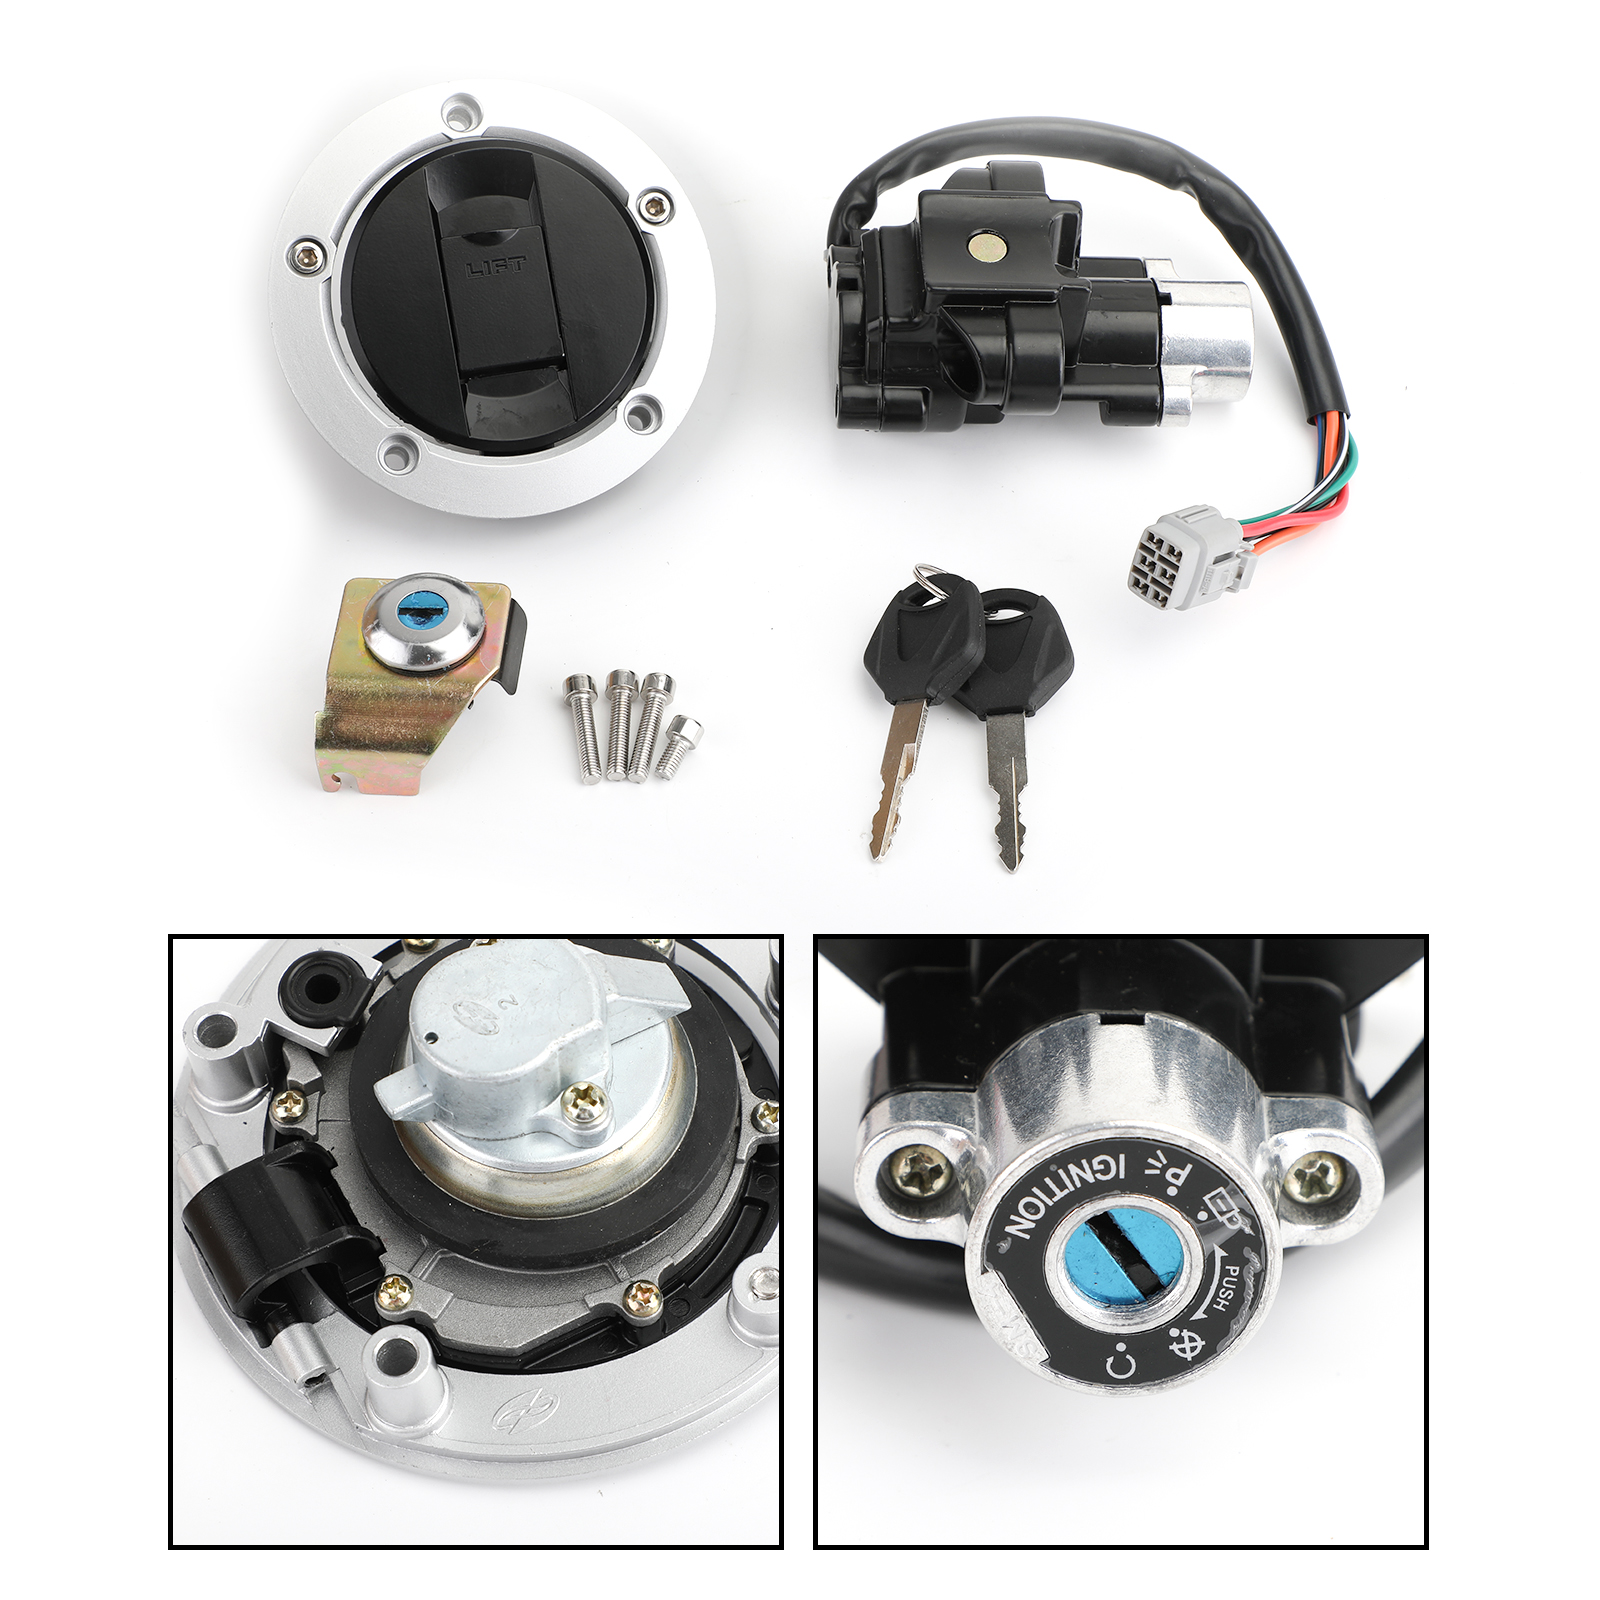 Artudatech Ignition Switch Fuel Gas Cap Lock Keys For Suzuki <font><b>GSF</b></font> <font><b>650</b></font> 1200 1250 Bandit image